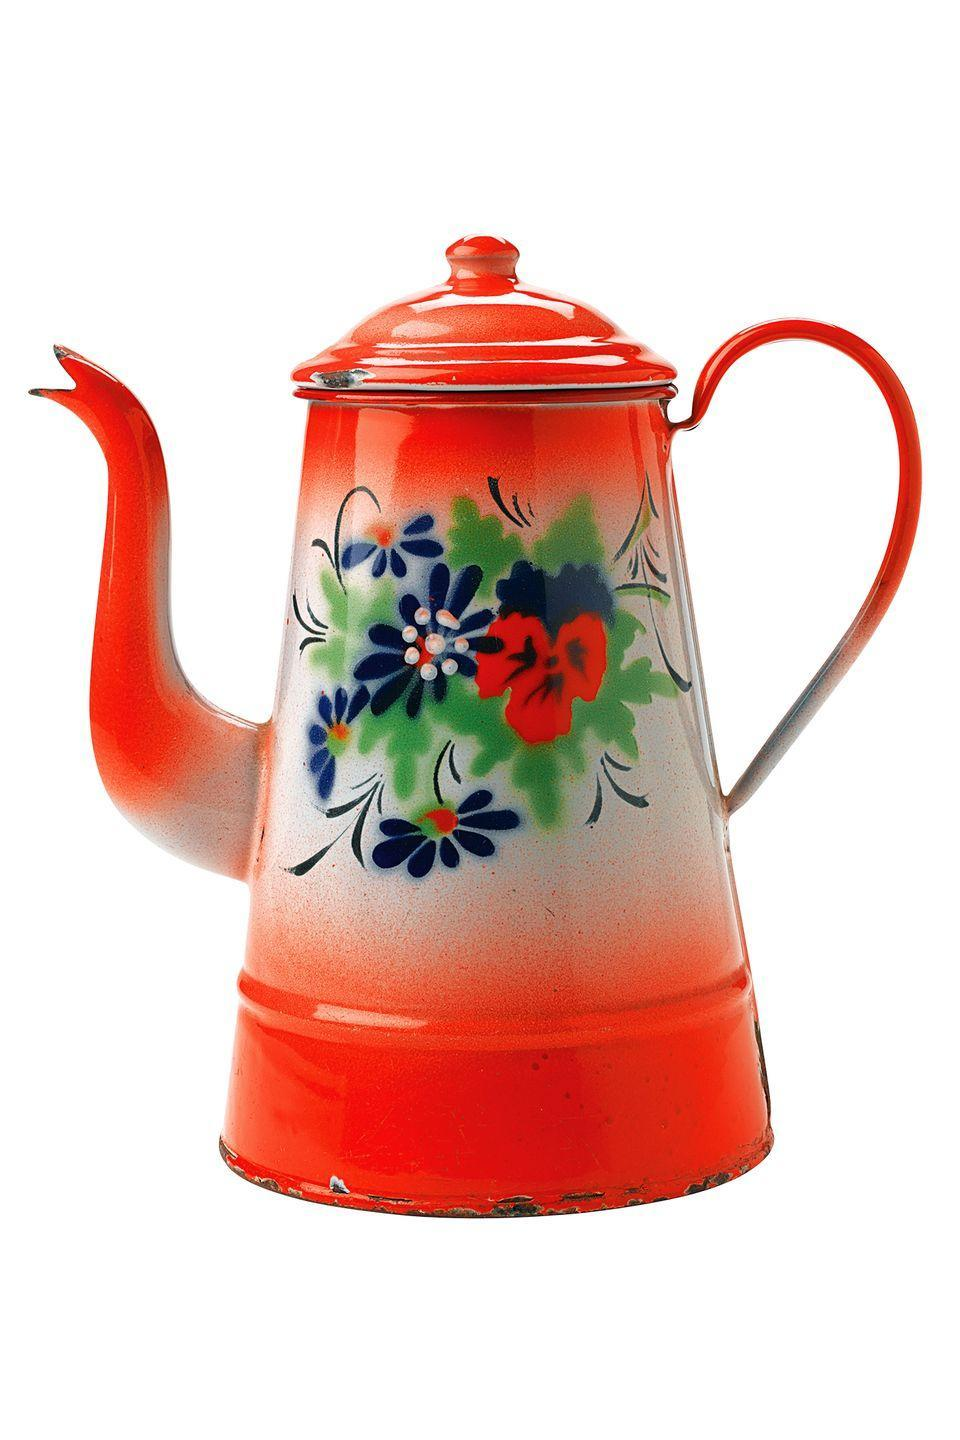 <p><strong>What it was worth (2005):</strong> $350</p><p><strong>What it's worth now:</strong> $200</p><p>We'd love to have our coffee or tea served from this floral painted pot.</p>